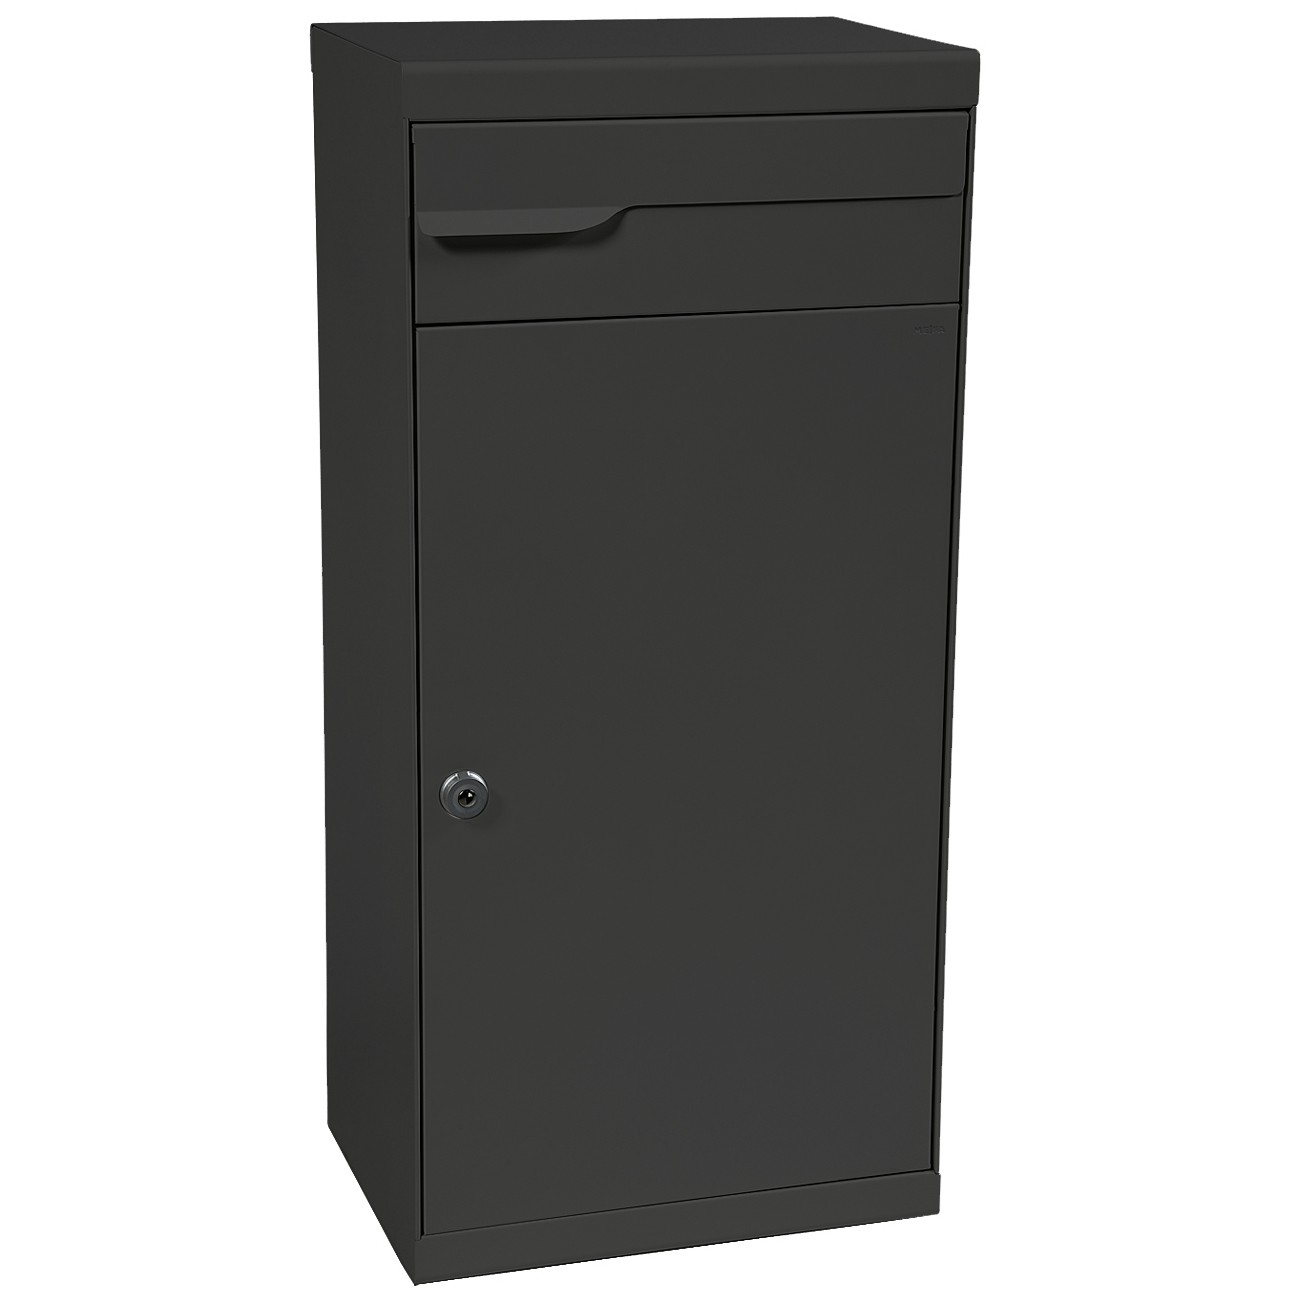 mefa paketpostkasten fuego 992 briefkasten entnahme hinten anthrazitgrau semimatt ral 7016. Black Bedroom Furniture Sets. Home Design Ideas